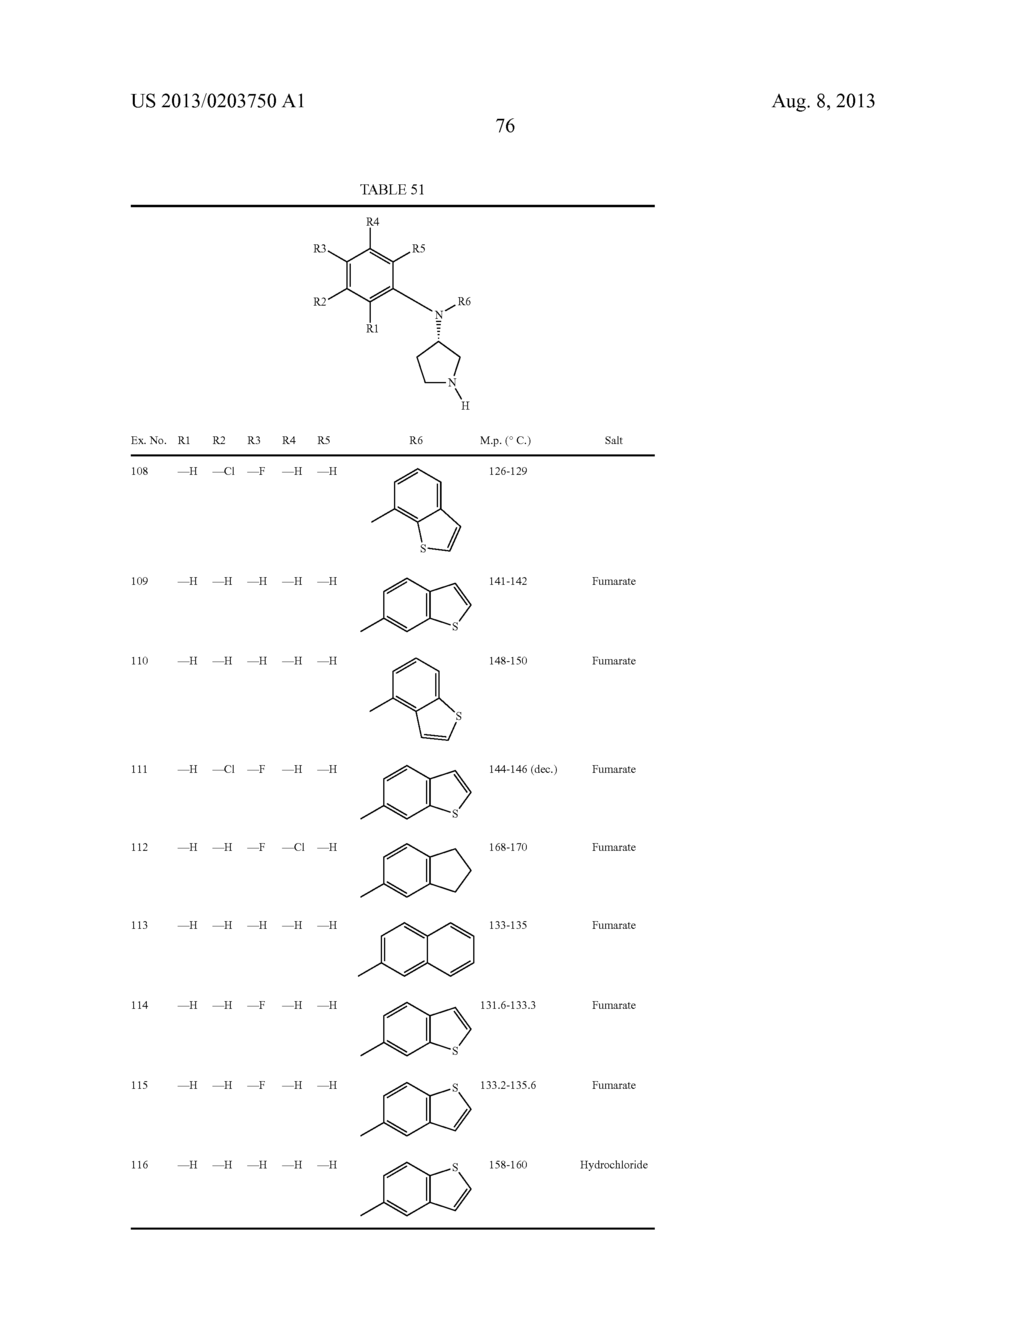 N,N-SUBSTITUTED 3-AMINOPYRROLIDINE COMPOUNDS USEFUL AS MONOAMINES REUPTAKE     INHIBITORS - diagram, schematic, and image 77